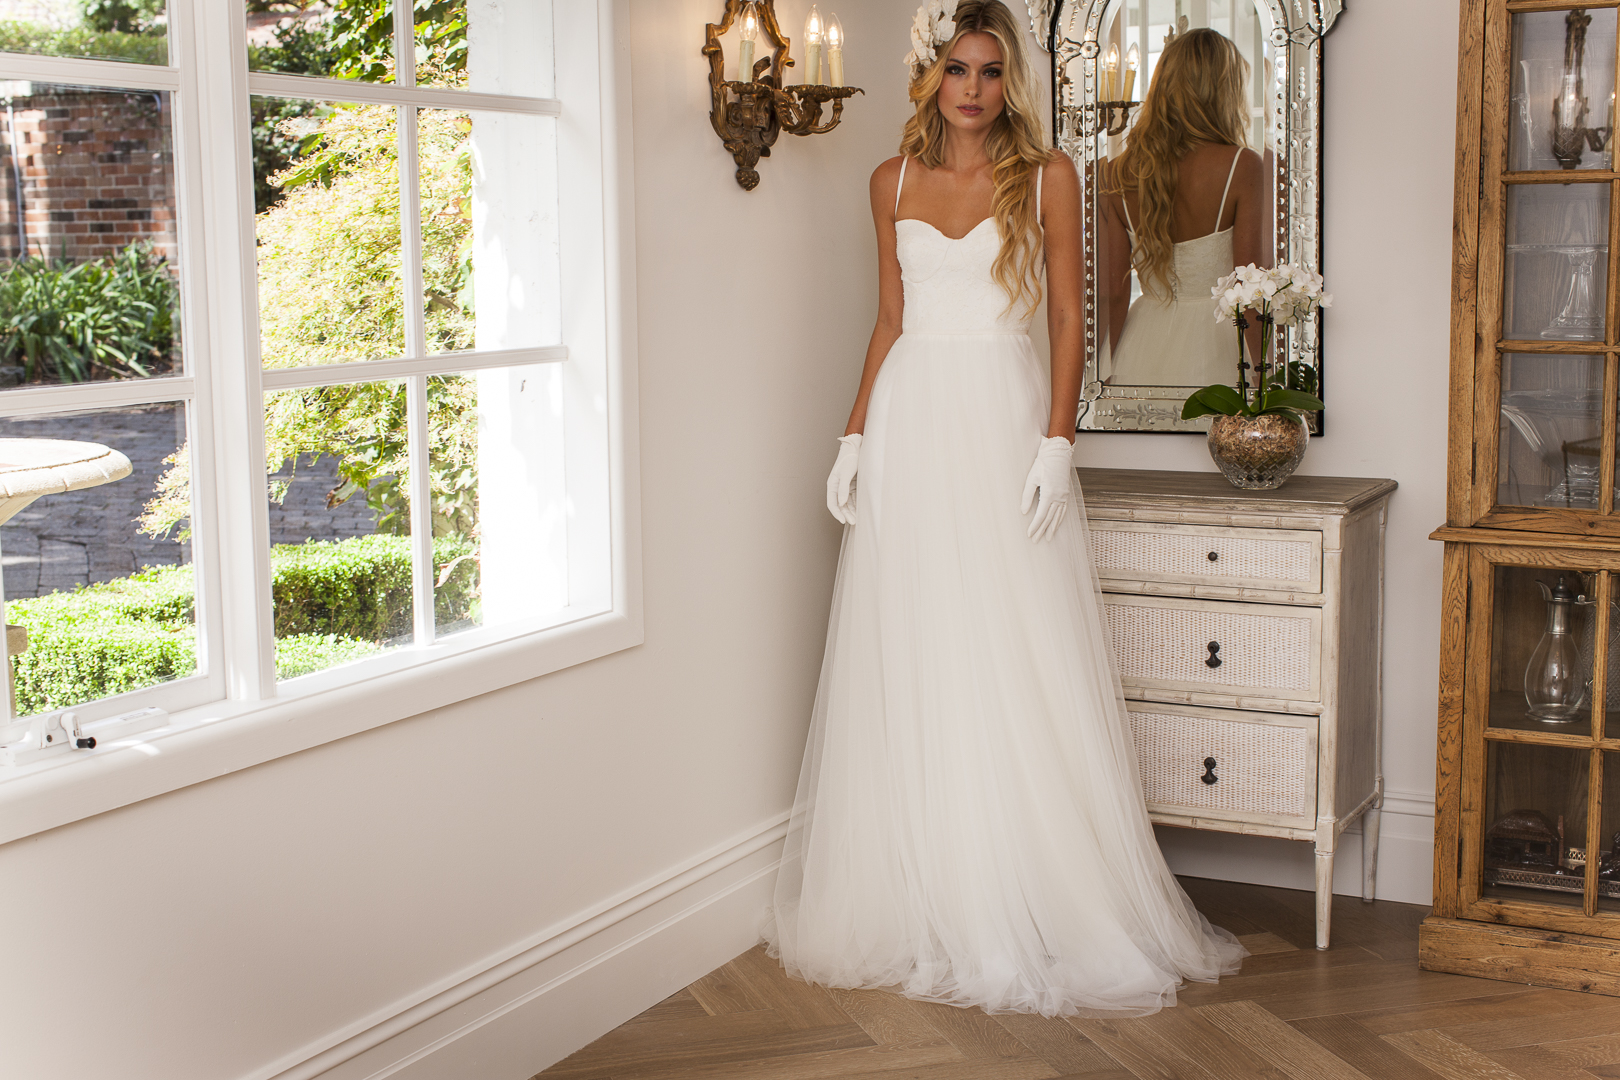 c3f70b8045d Lisa Gowing - Bespoke Wedding Dresses by Lisa Gowing